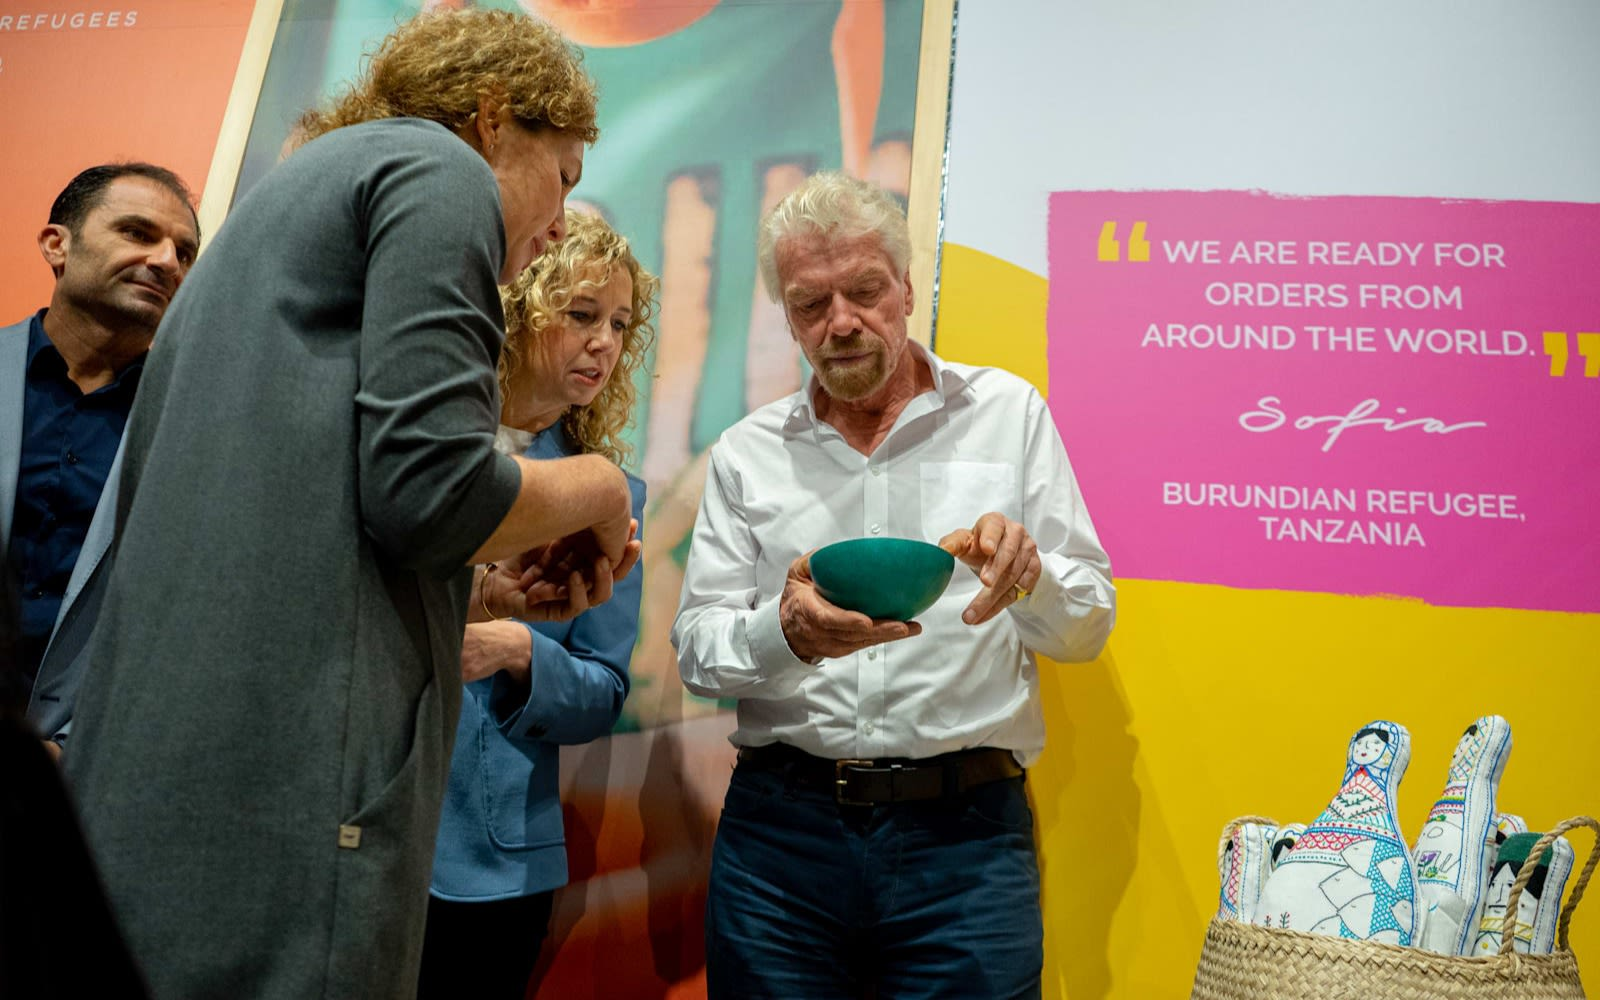 Richard Branson at the M=Virgin Megastore Made 51 pop-up shop to support refugees